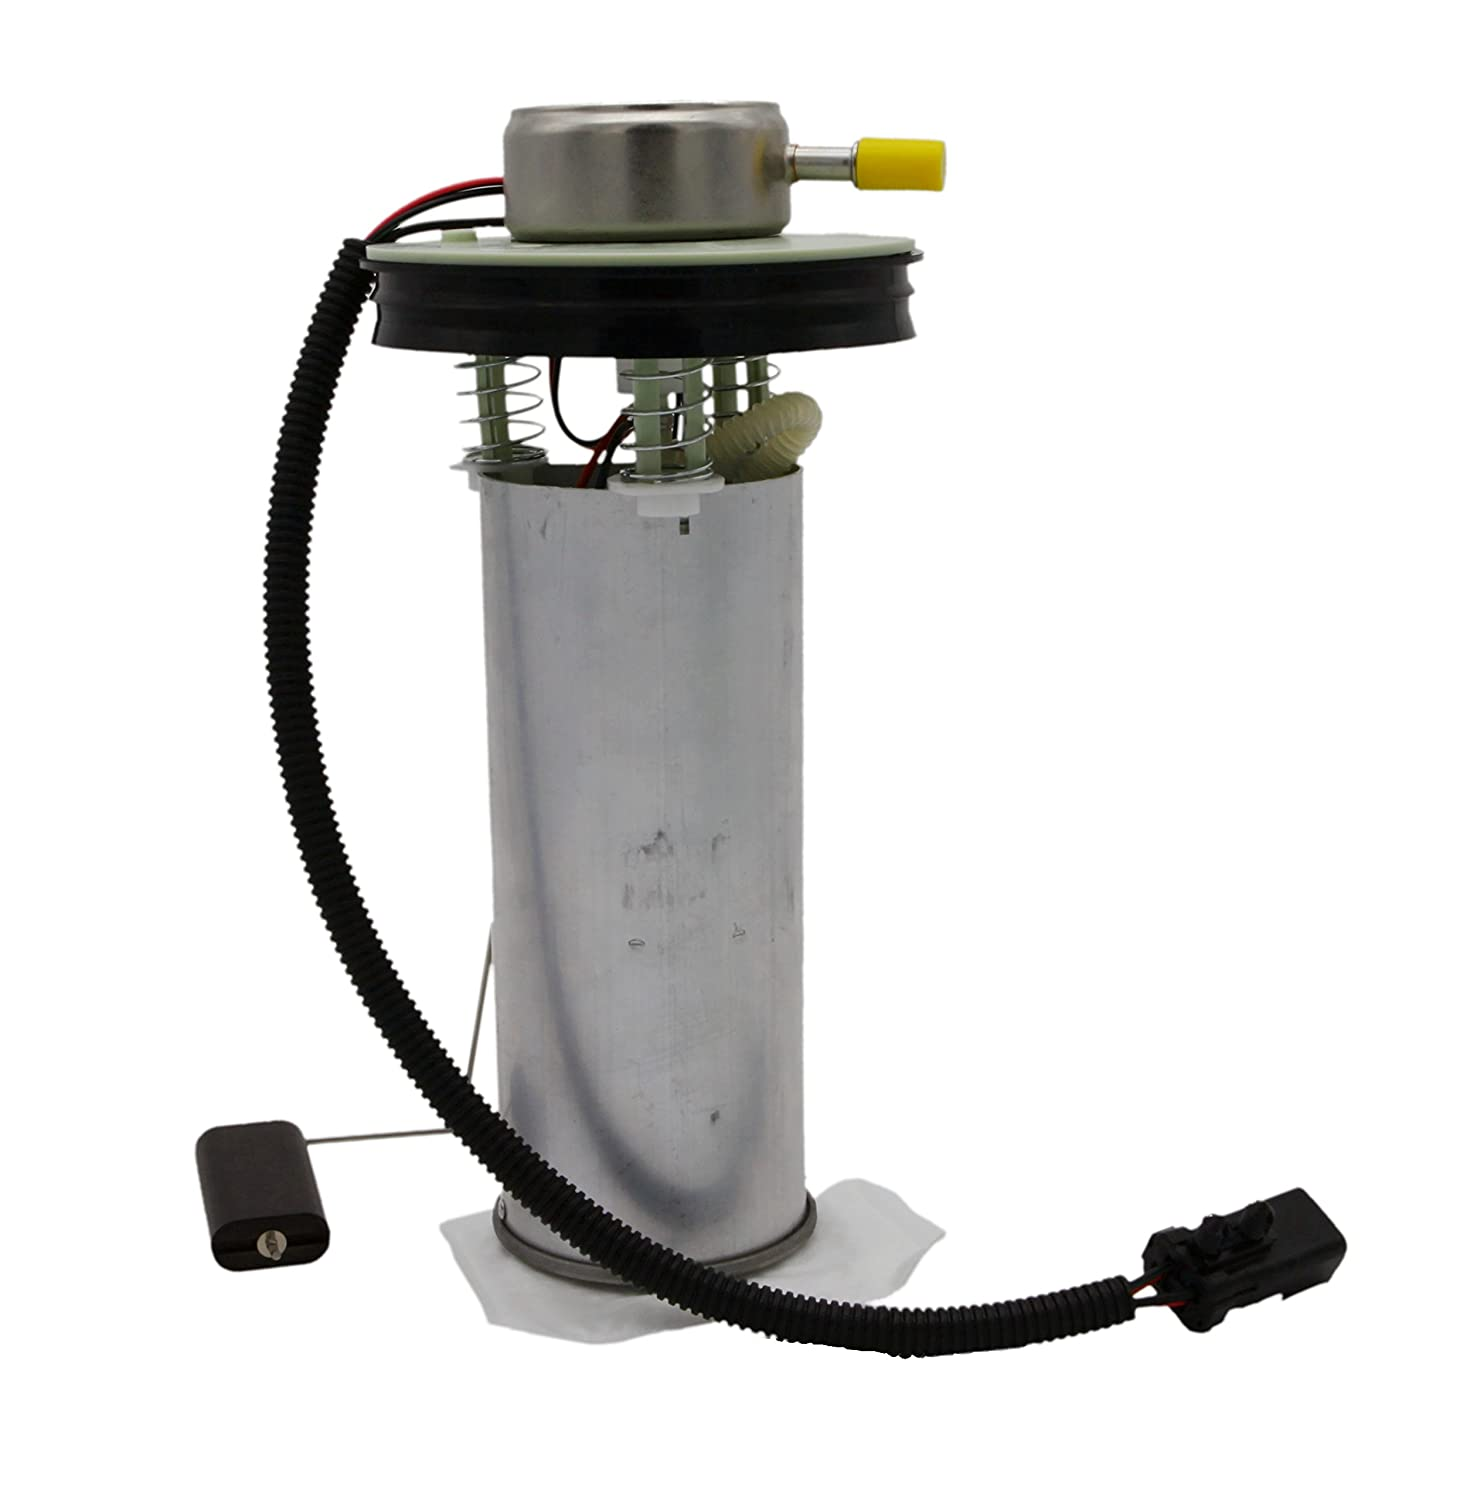 Fuel Pump A7115mn For Jeep Tj Wrangler 97 02 Filter On 25l 40lonly 19 Gallon Tank Module Assembly E7115mn Automotive